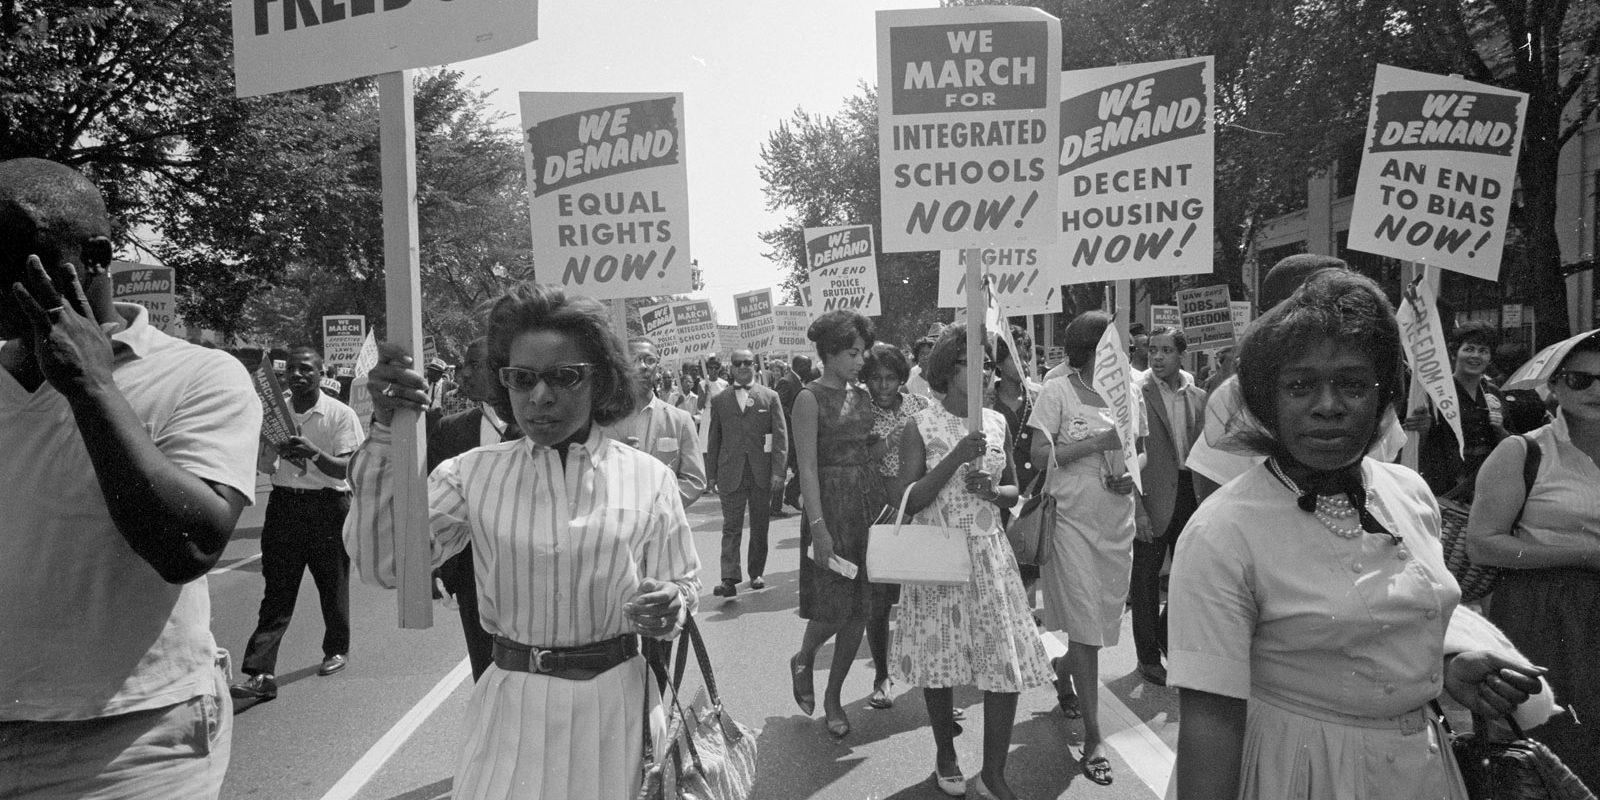 supporters-rights-placards-Washington-DC-August-28-1963.jpg